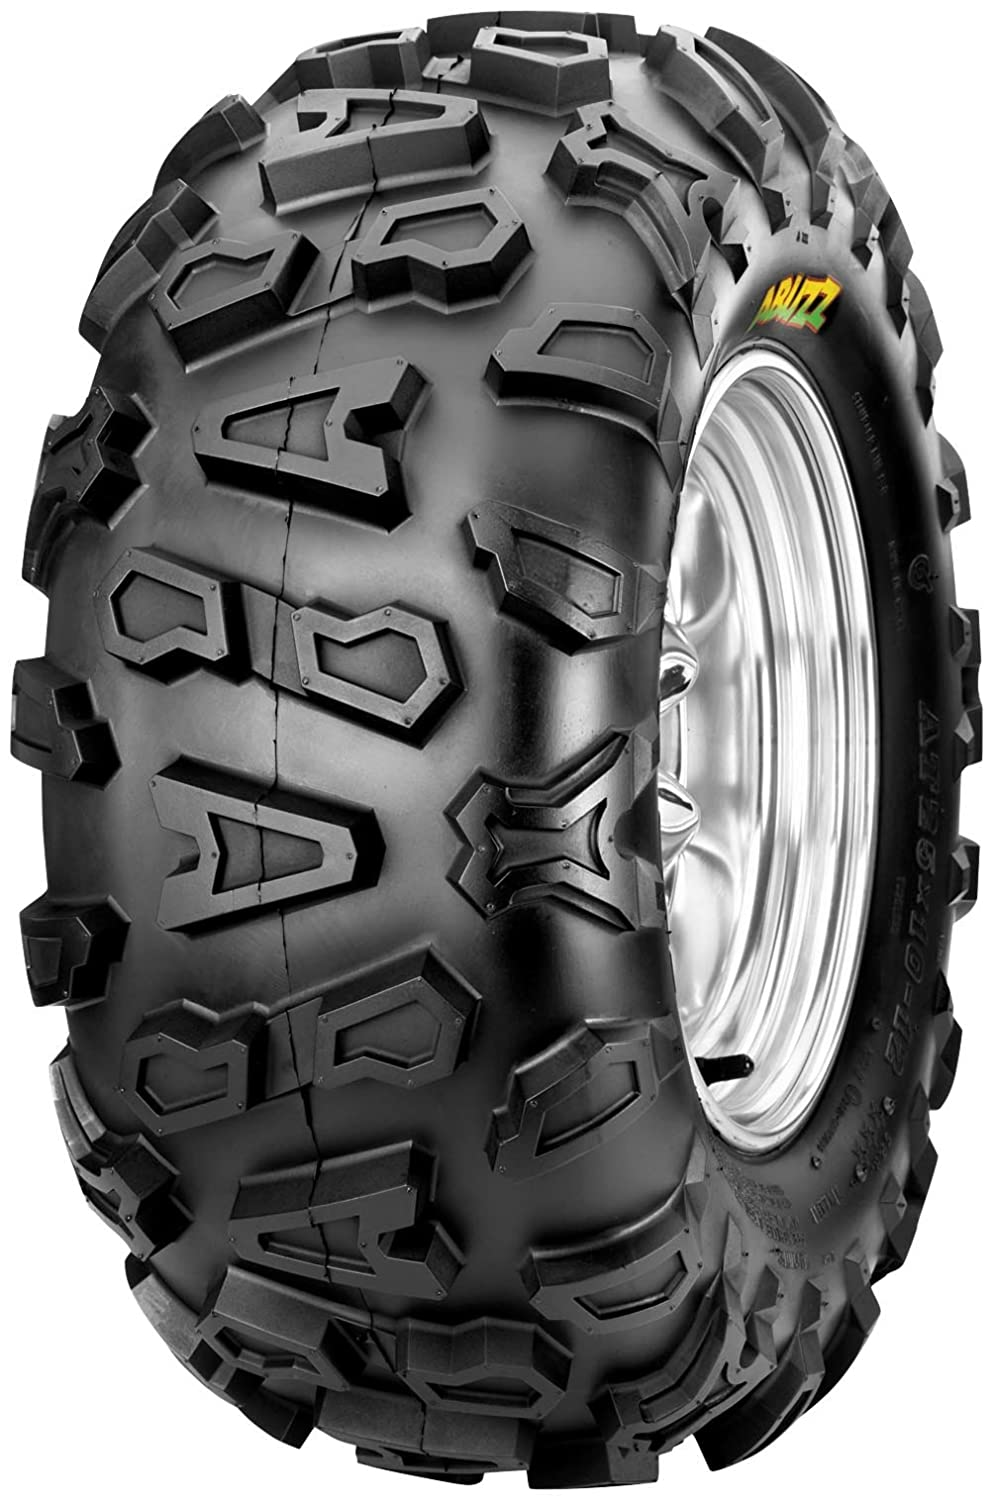 Maxxis Cheng Shin Abuzz CU02 Tire - Rear - 26x10x12 , Tire Size: 26x10x12, Tire Construction: Bias, Tire Application: Mud/Snow, Rim Size: 12, Position: Rear, Tire Ply: 6, Tire Type: ATV/UTV TM166756G0